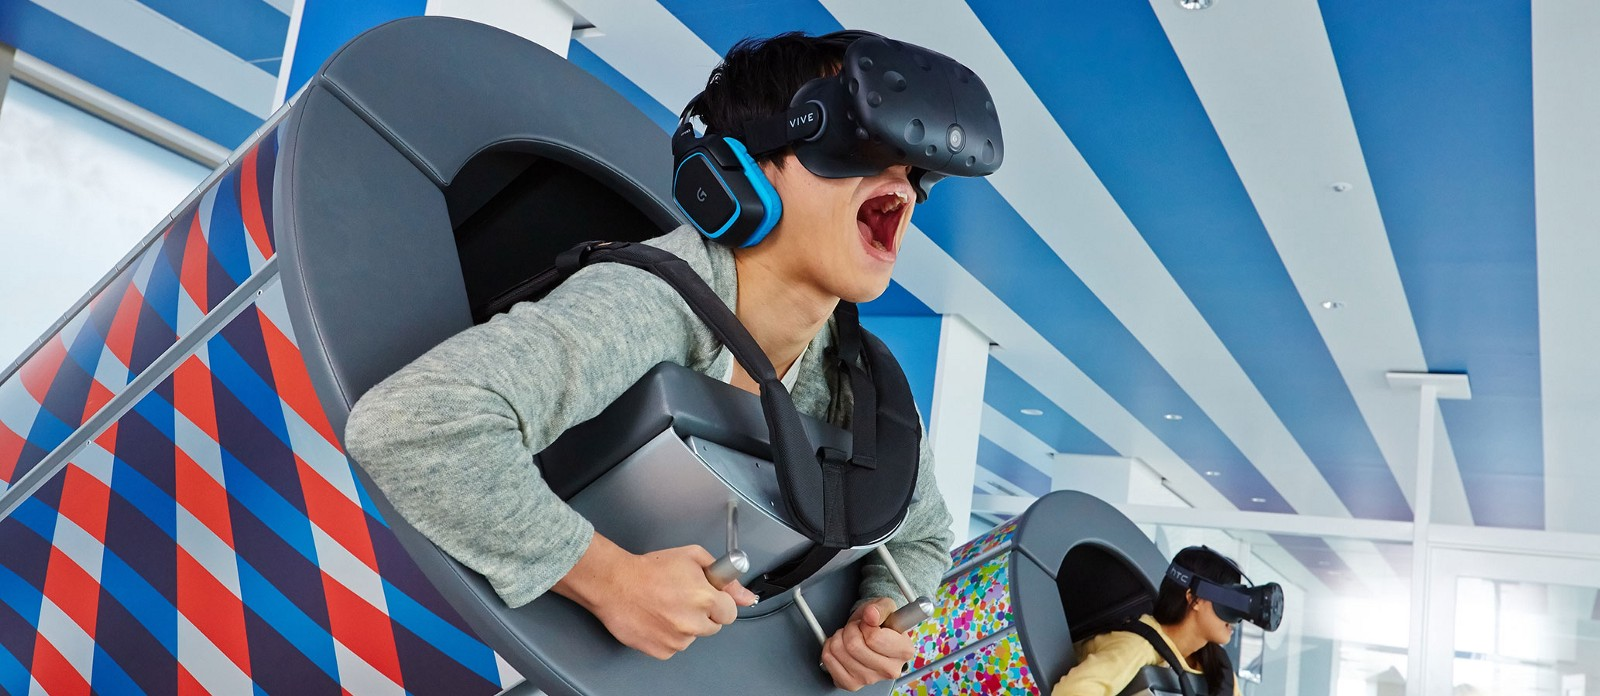 6 Best Spots for VR Experiences in Tokyo! - Japan Web Magazine